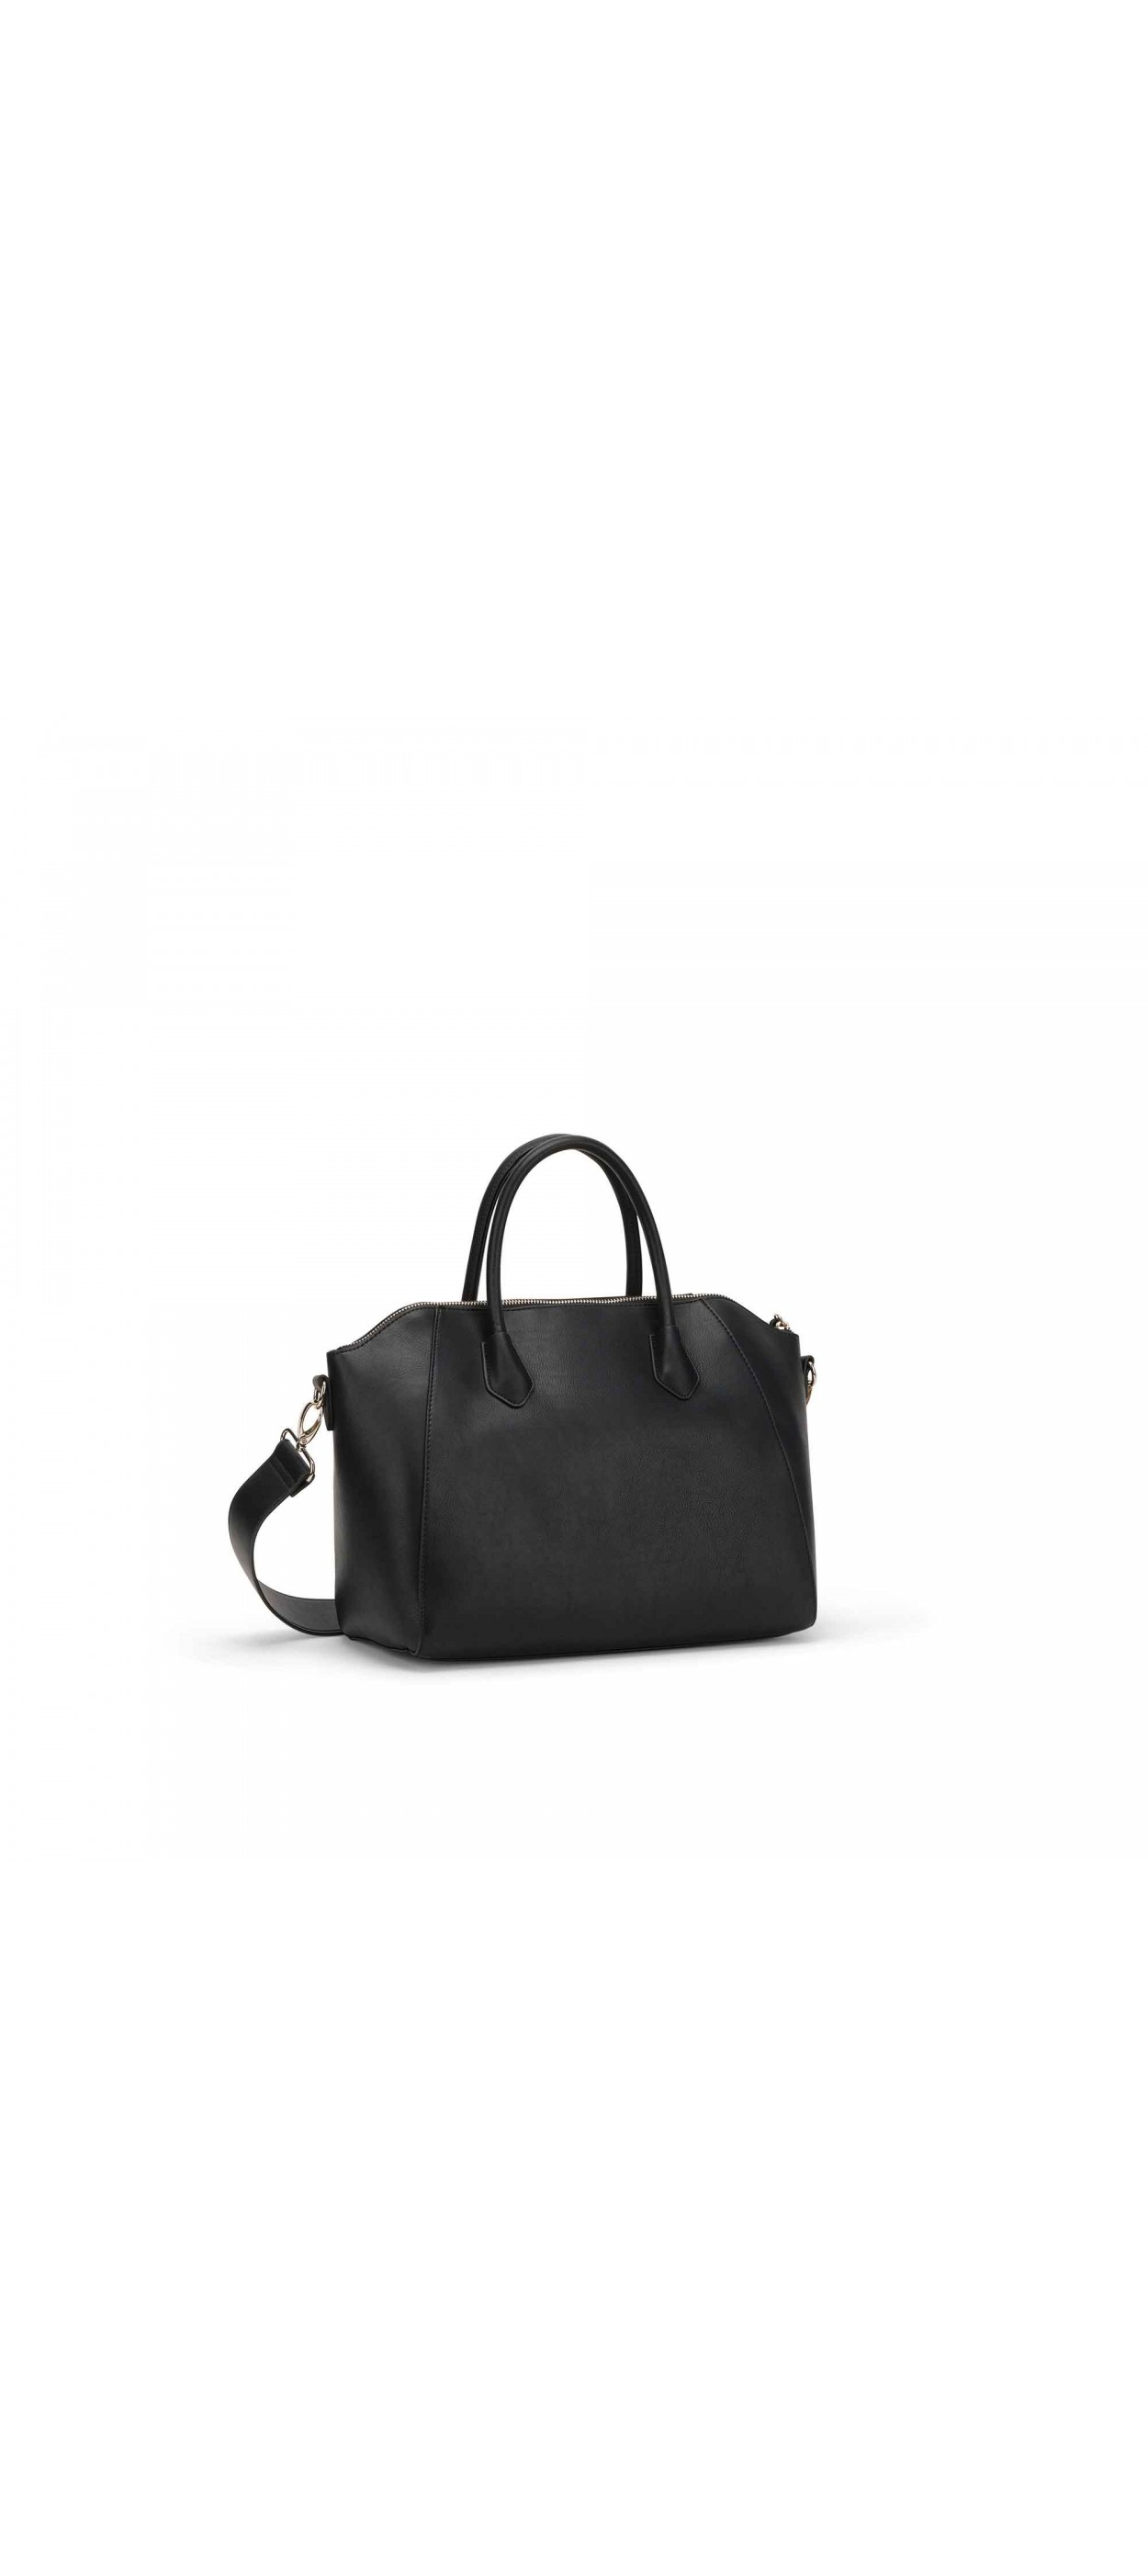 HAND BAG - GBDA1852 - GAELLE PARIS